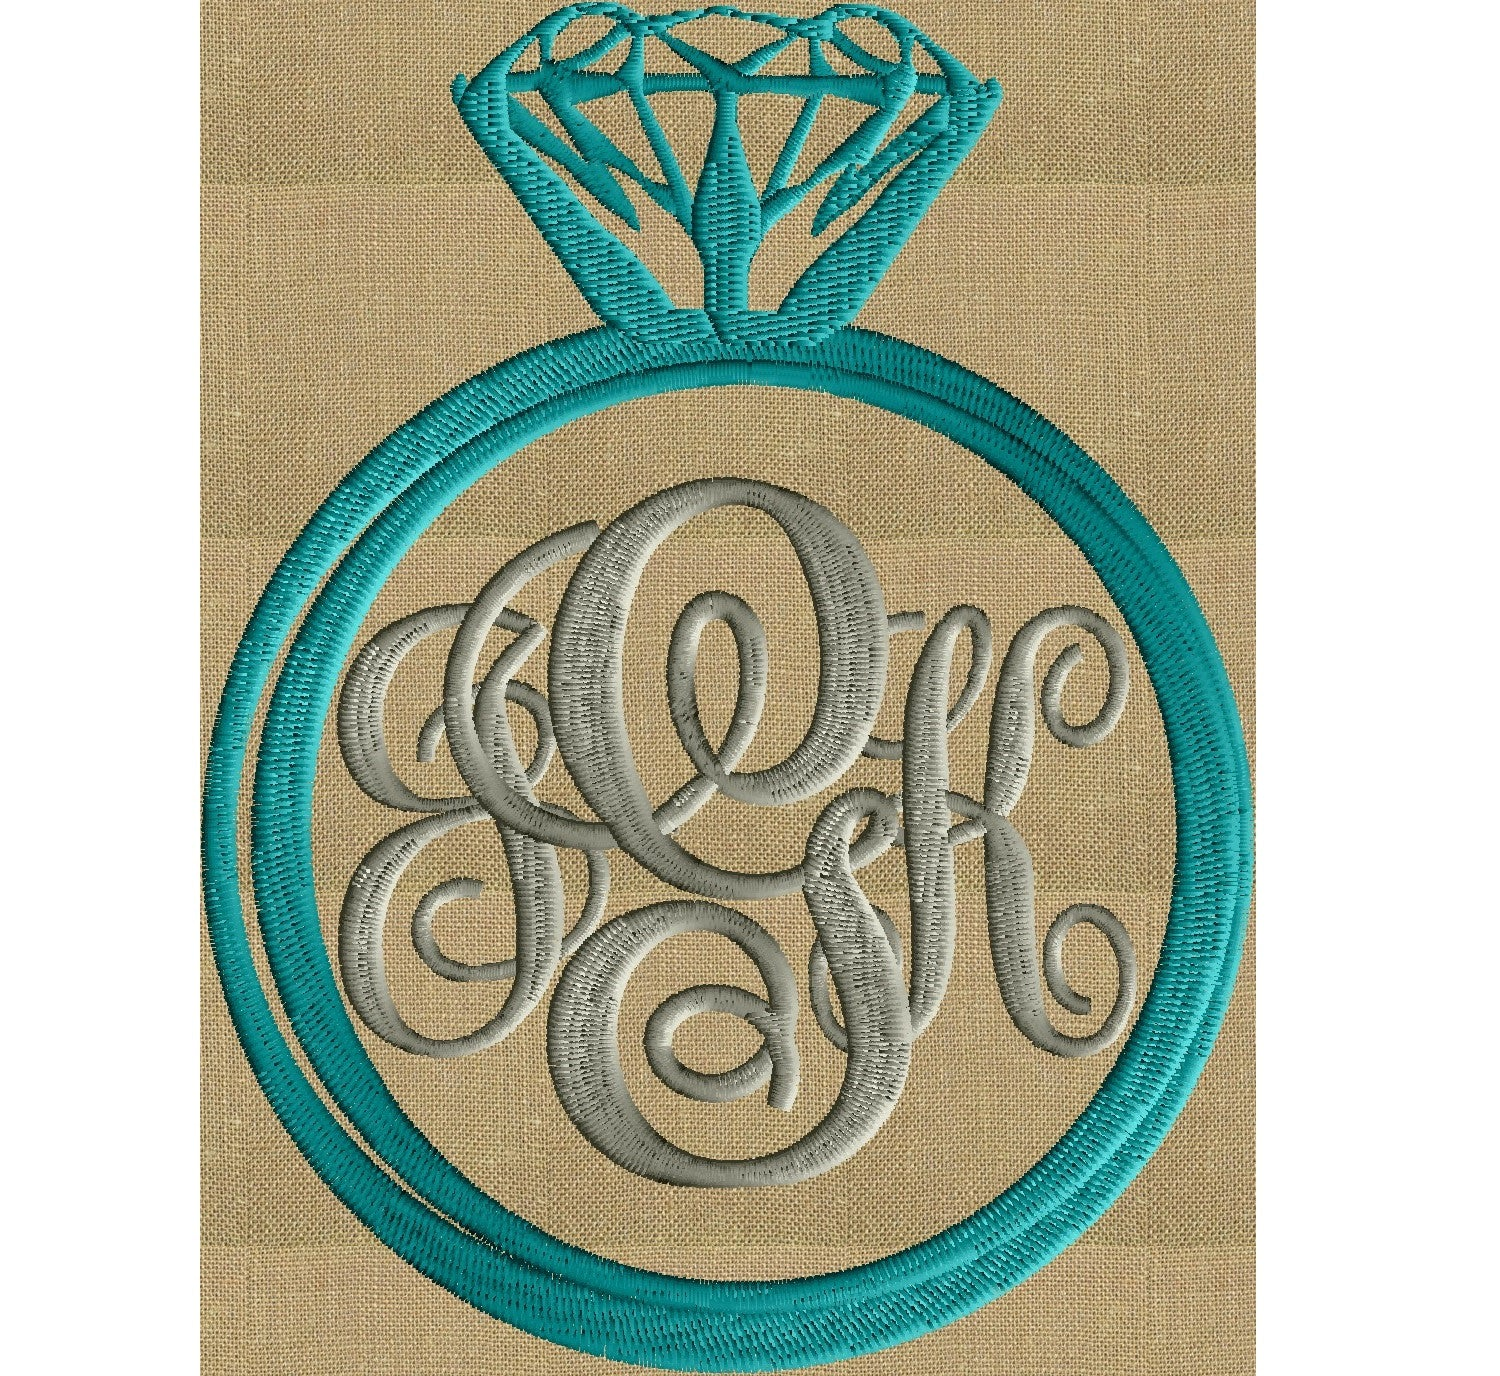 Engagement Ring Font Frame Monogram Embroidery Design - Font not included - LARGER FRAMES ONLY - Instant download - Dst Exp Vp3 Jef Pes